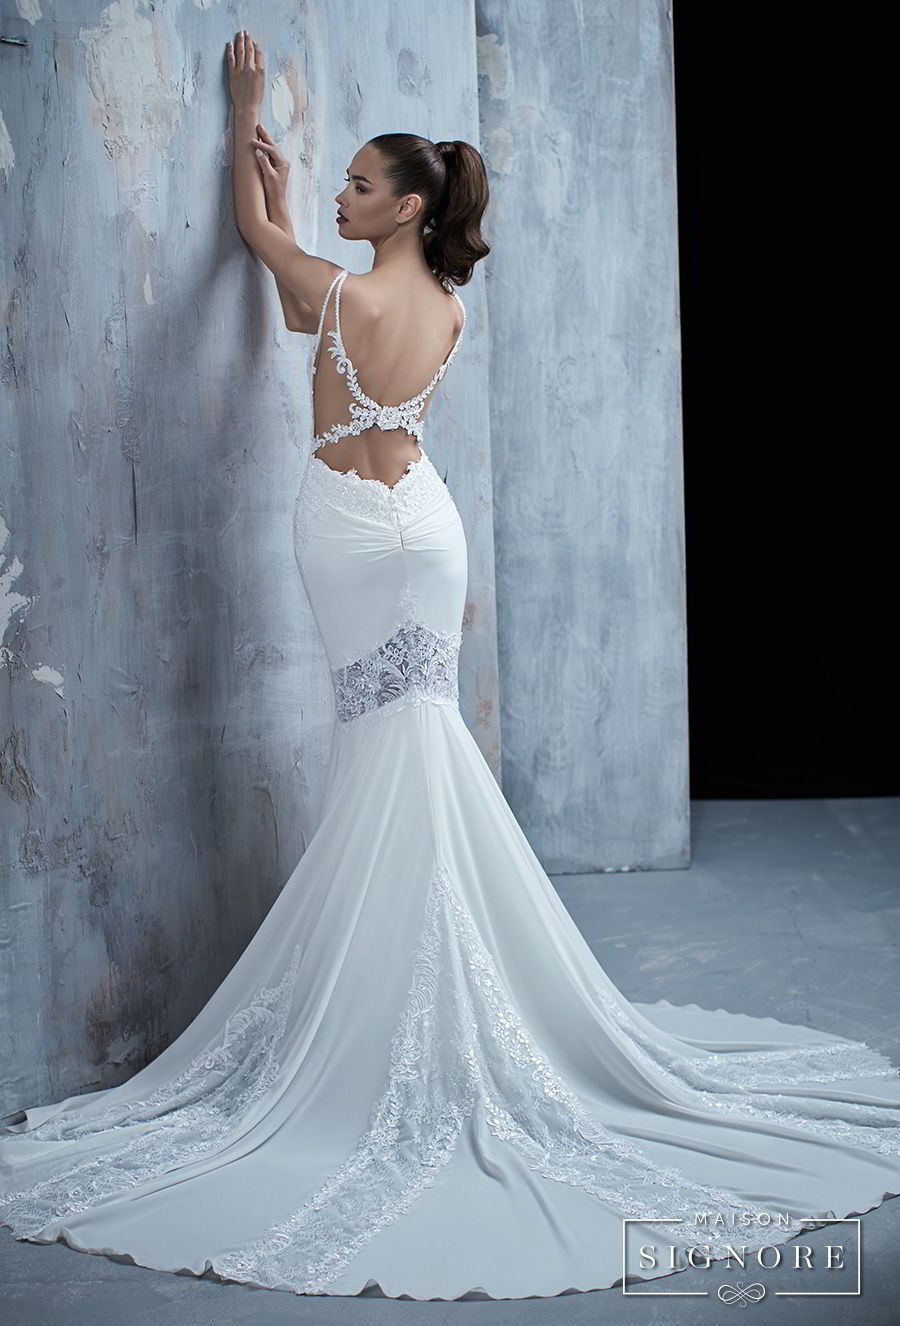 maison signore 2017 bridal sleeveless mermaid wedding dress open back chapel train (thalia) bv mv